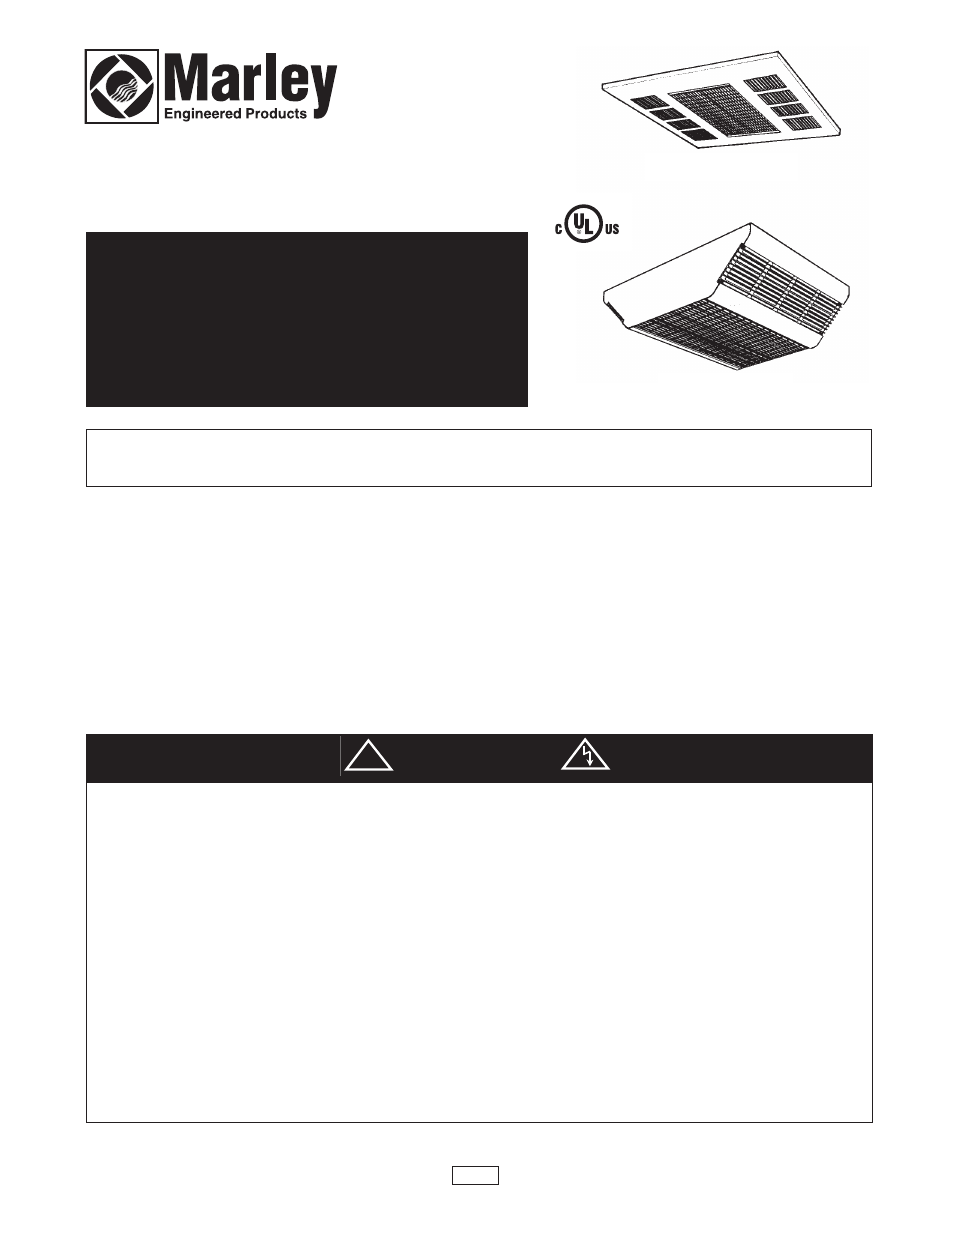 medium resolution of qmark cdf commercial downflow ceiling mounted heaters user manual 6 pages